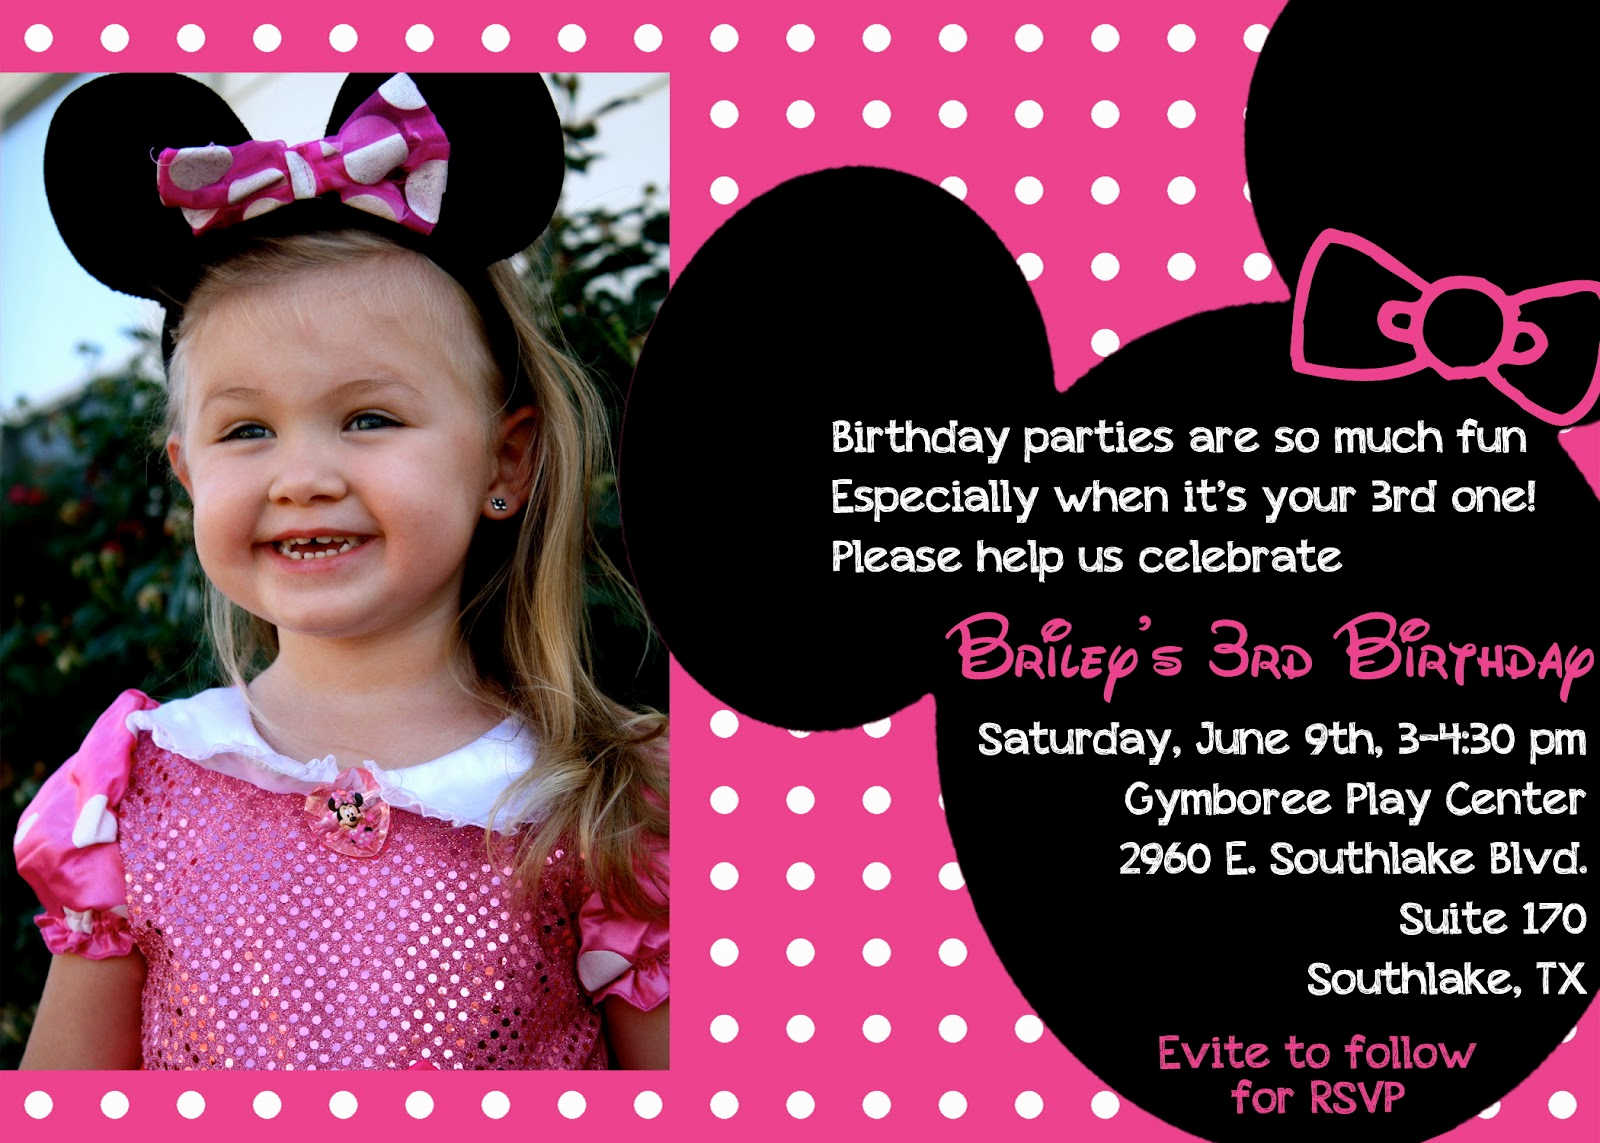 3rd Birthday Party Invitation Wording Luxury the Bufe Family Minnie Mouse 3rd Birthday Party